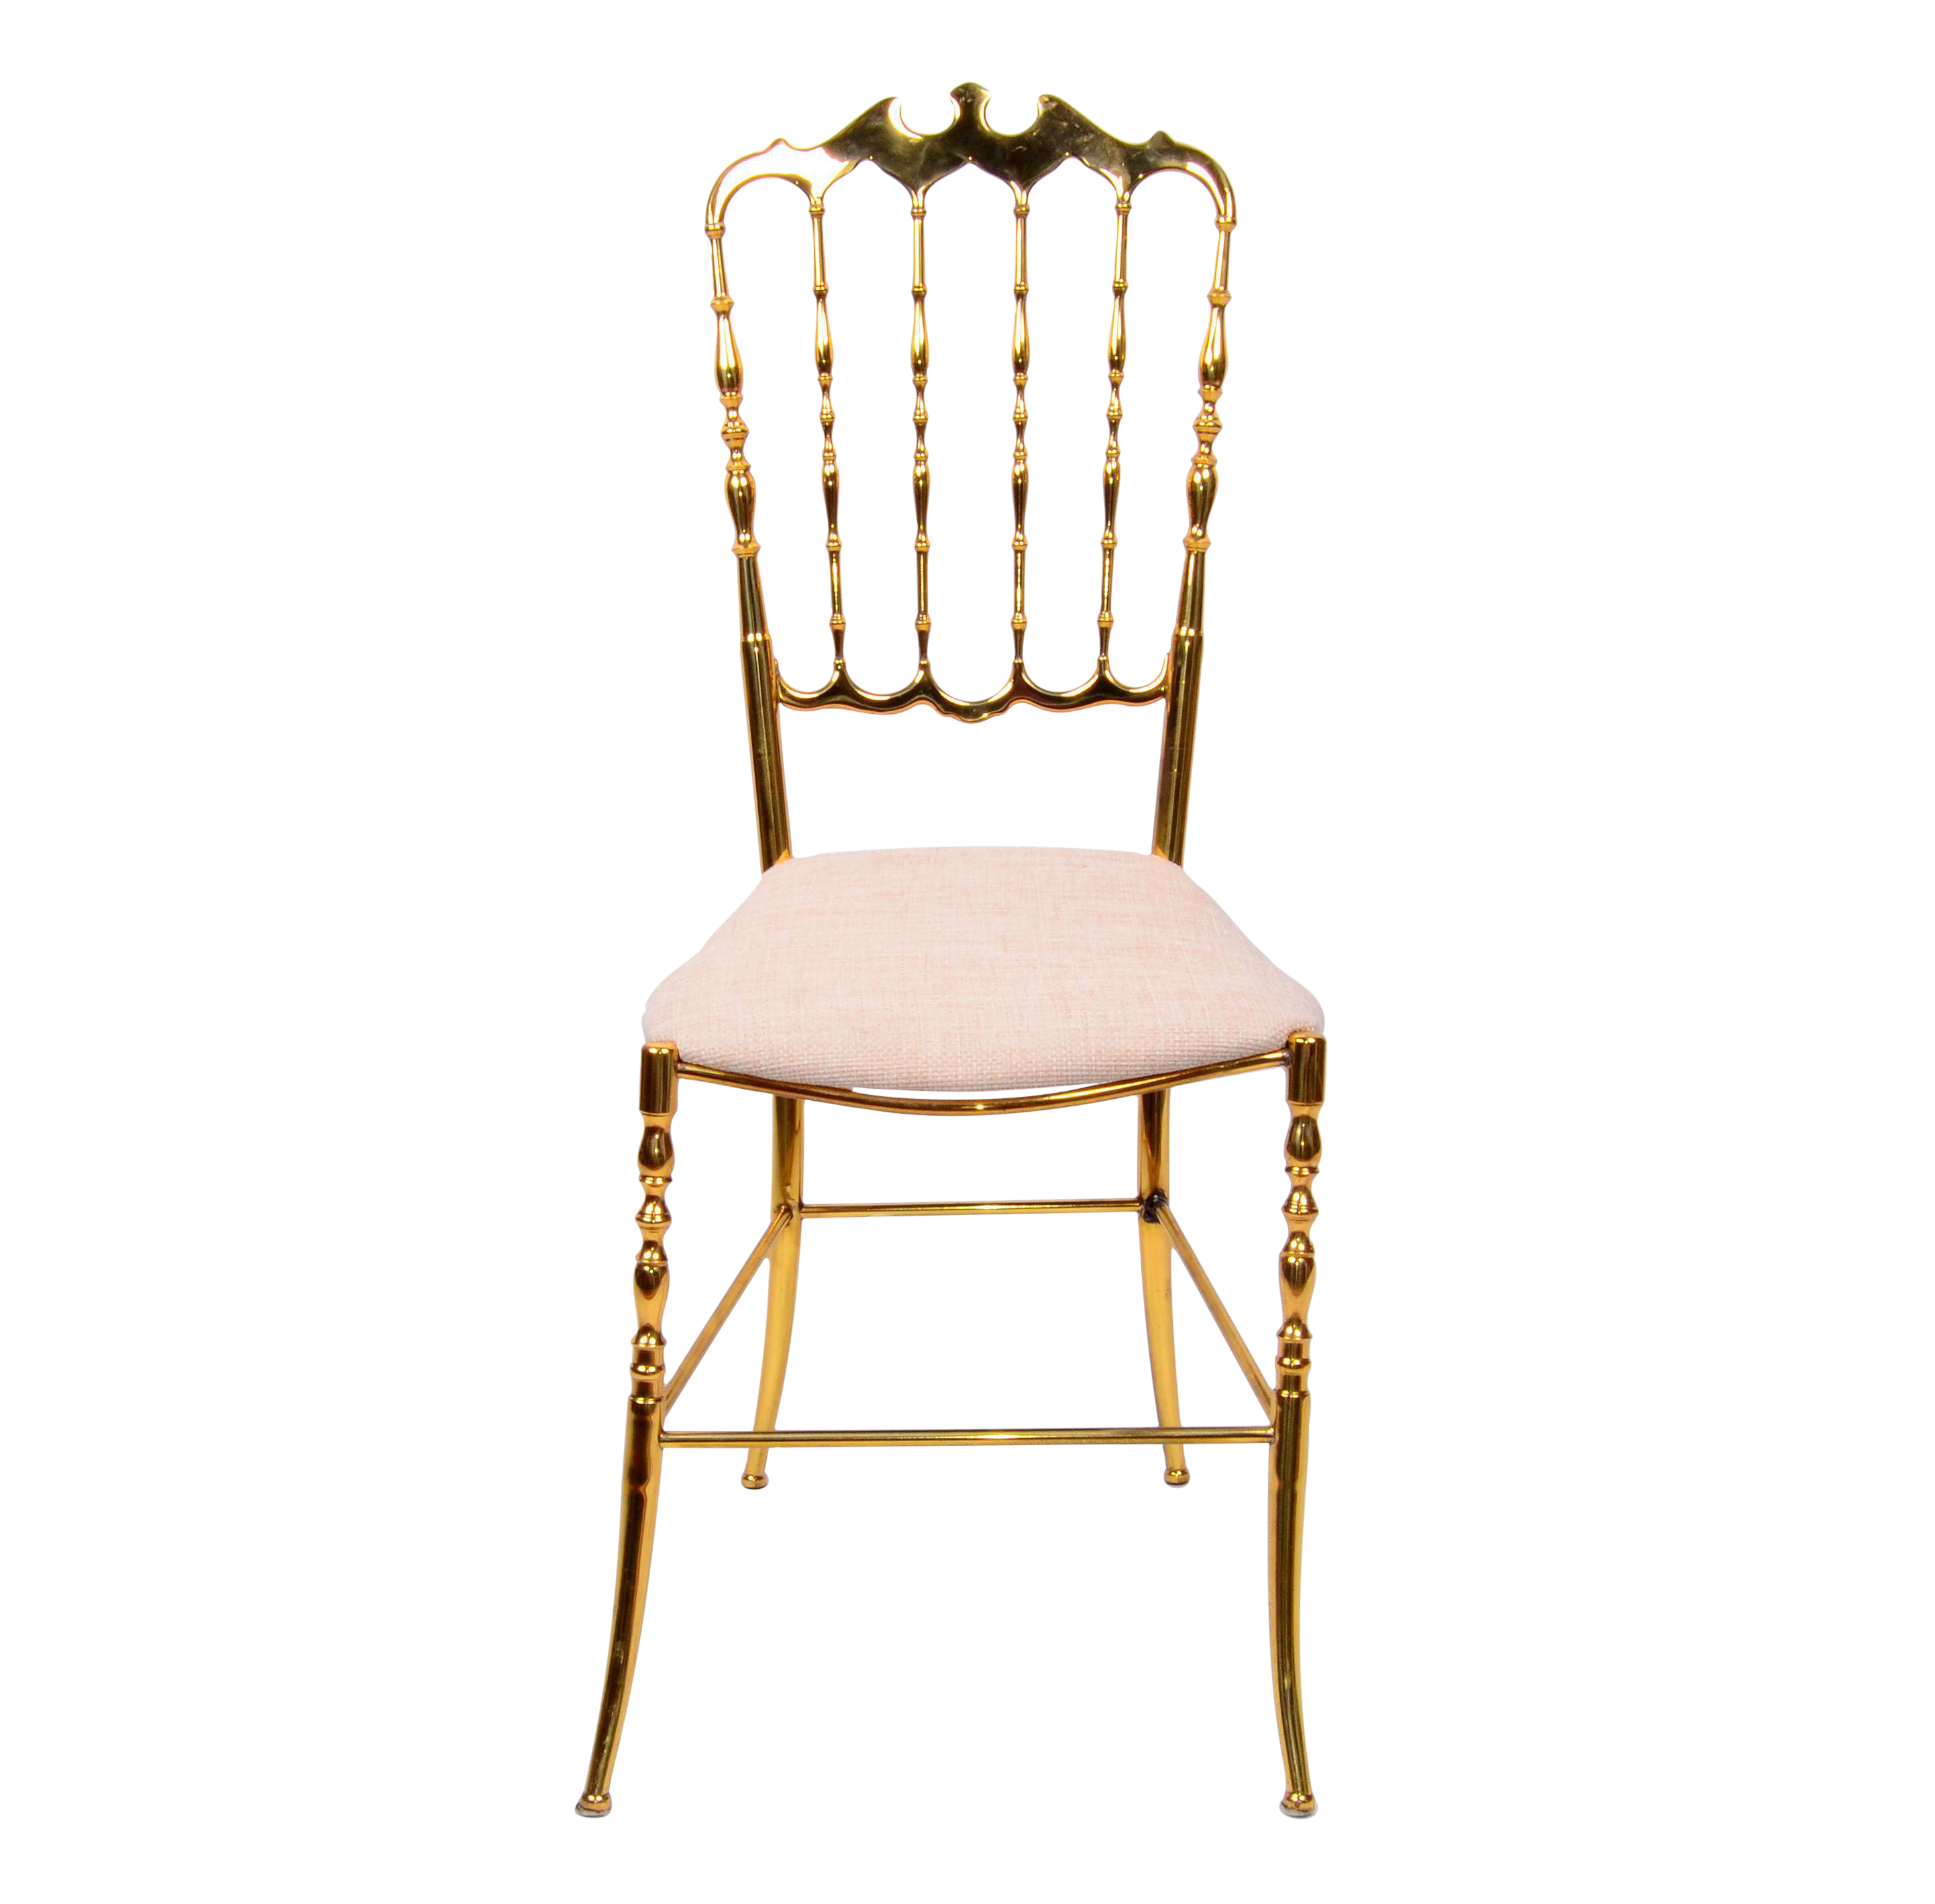 us brass home di office chairs null images ethan shop desk grant allen en chair furniture front